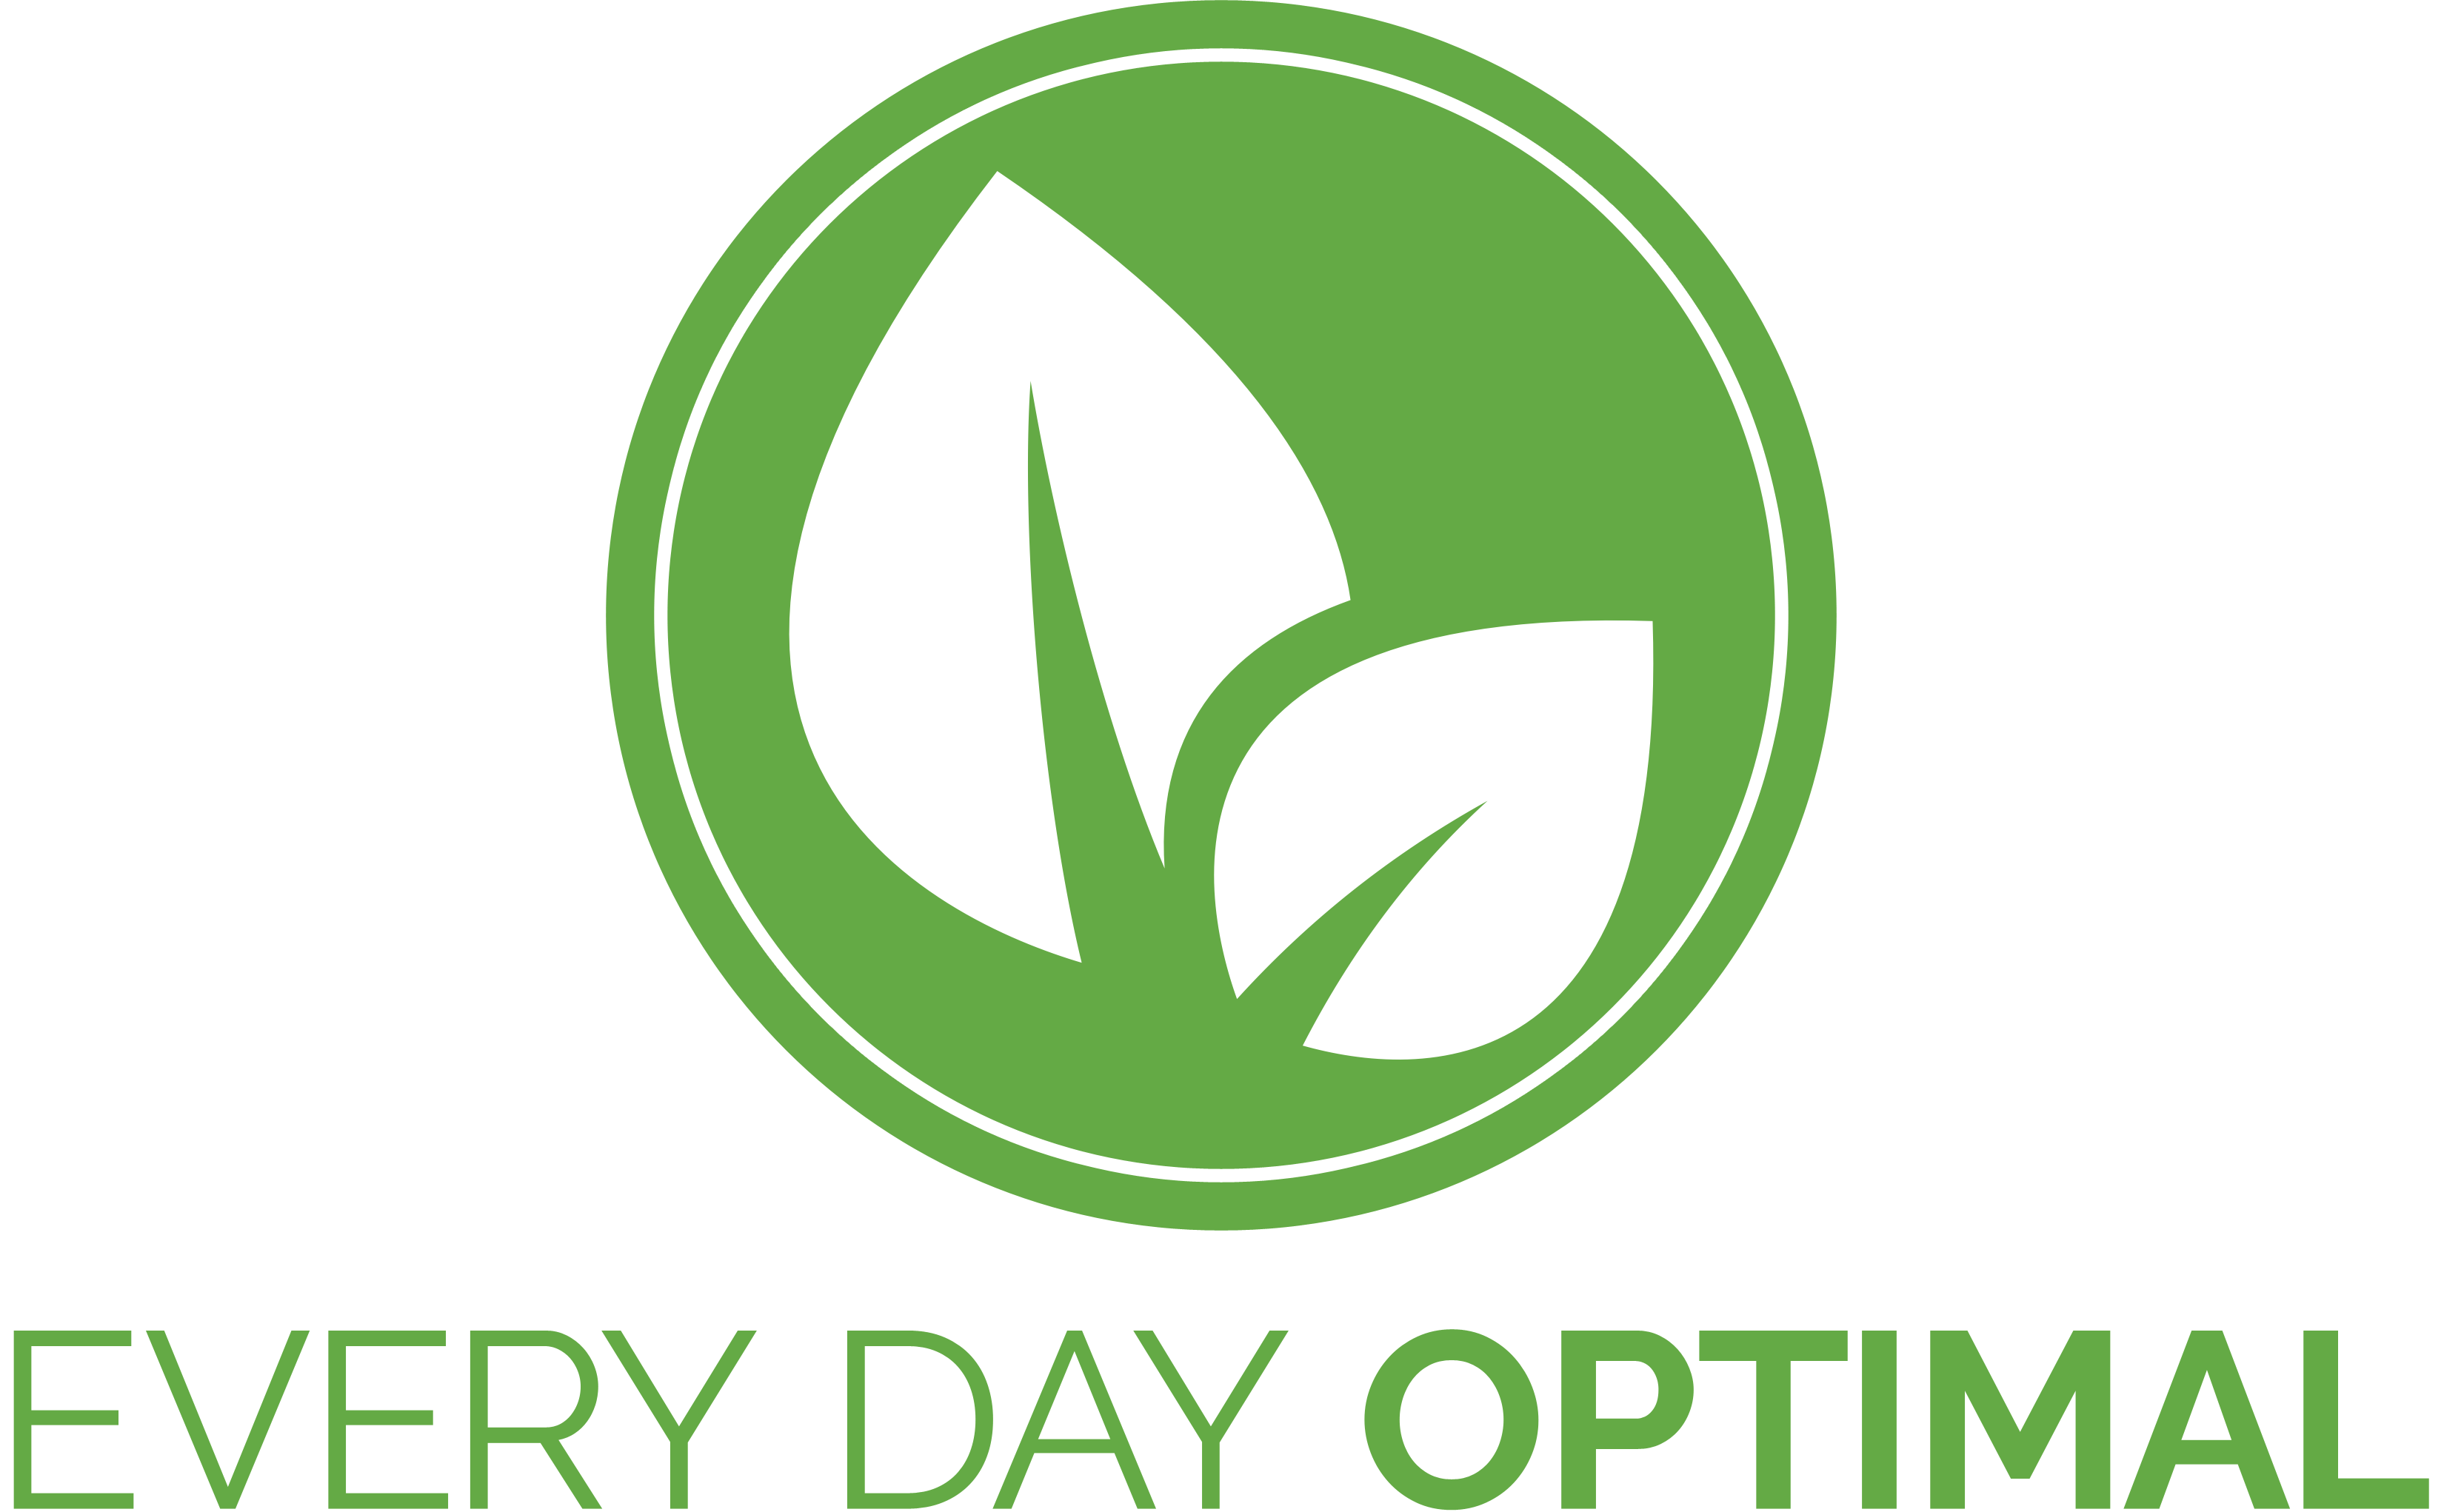 20% Off Everyday Optimal Coupon Code